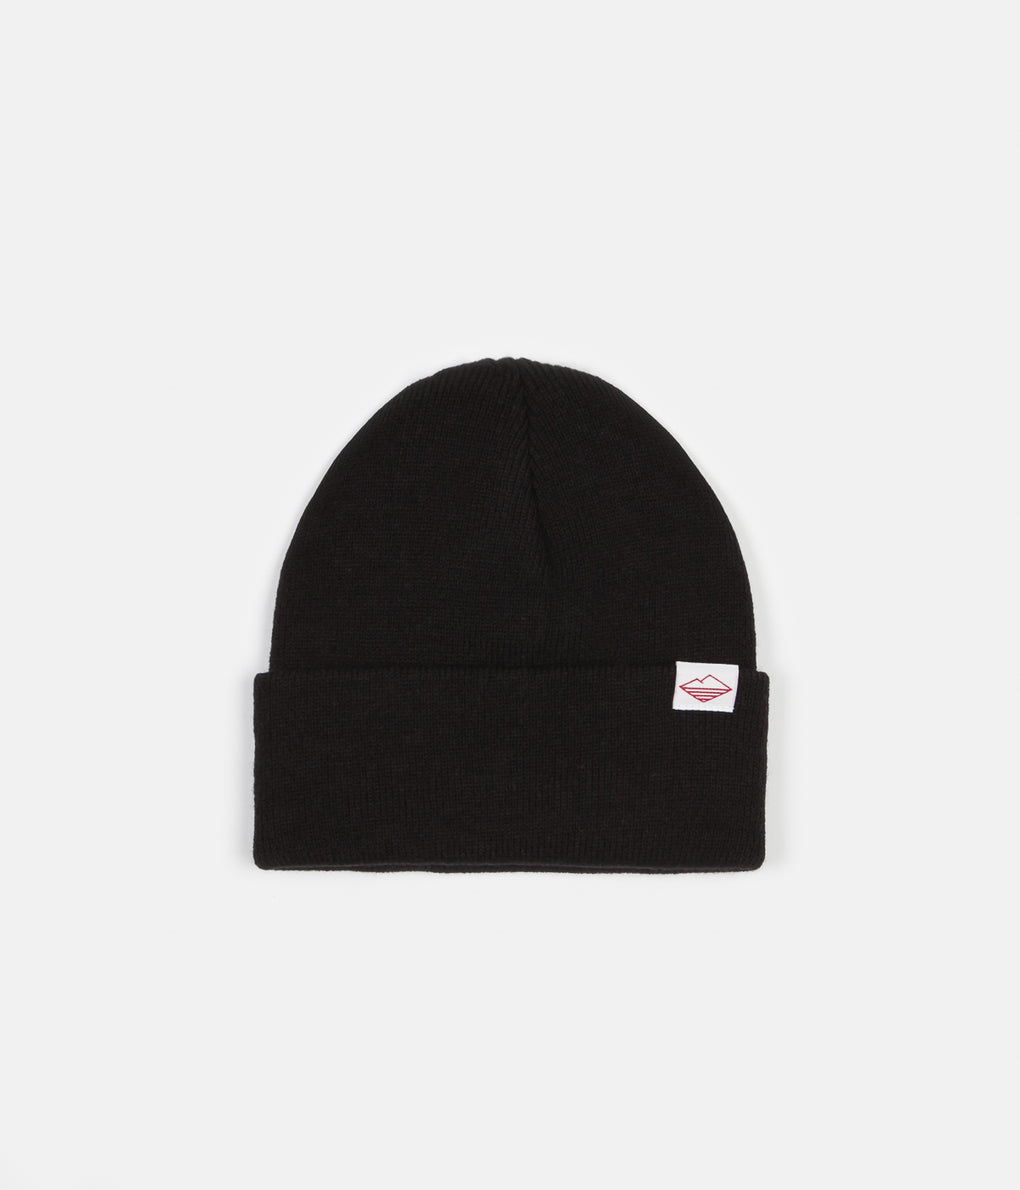 Battenwear Watch Cap - Black